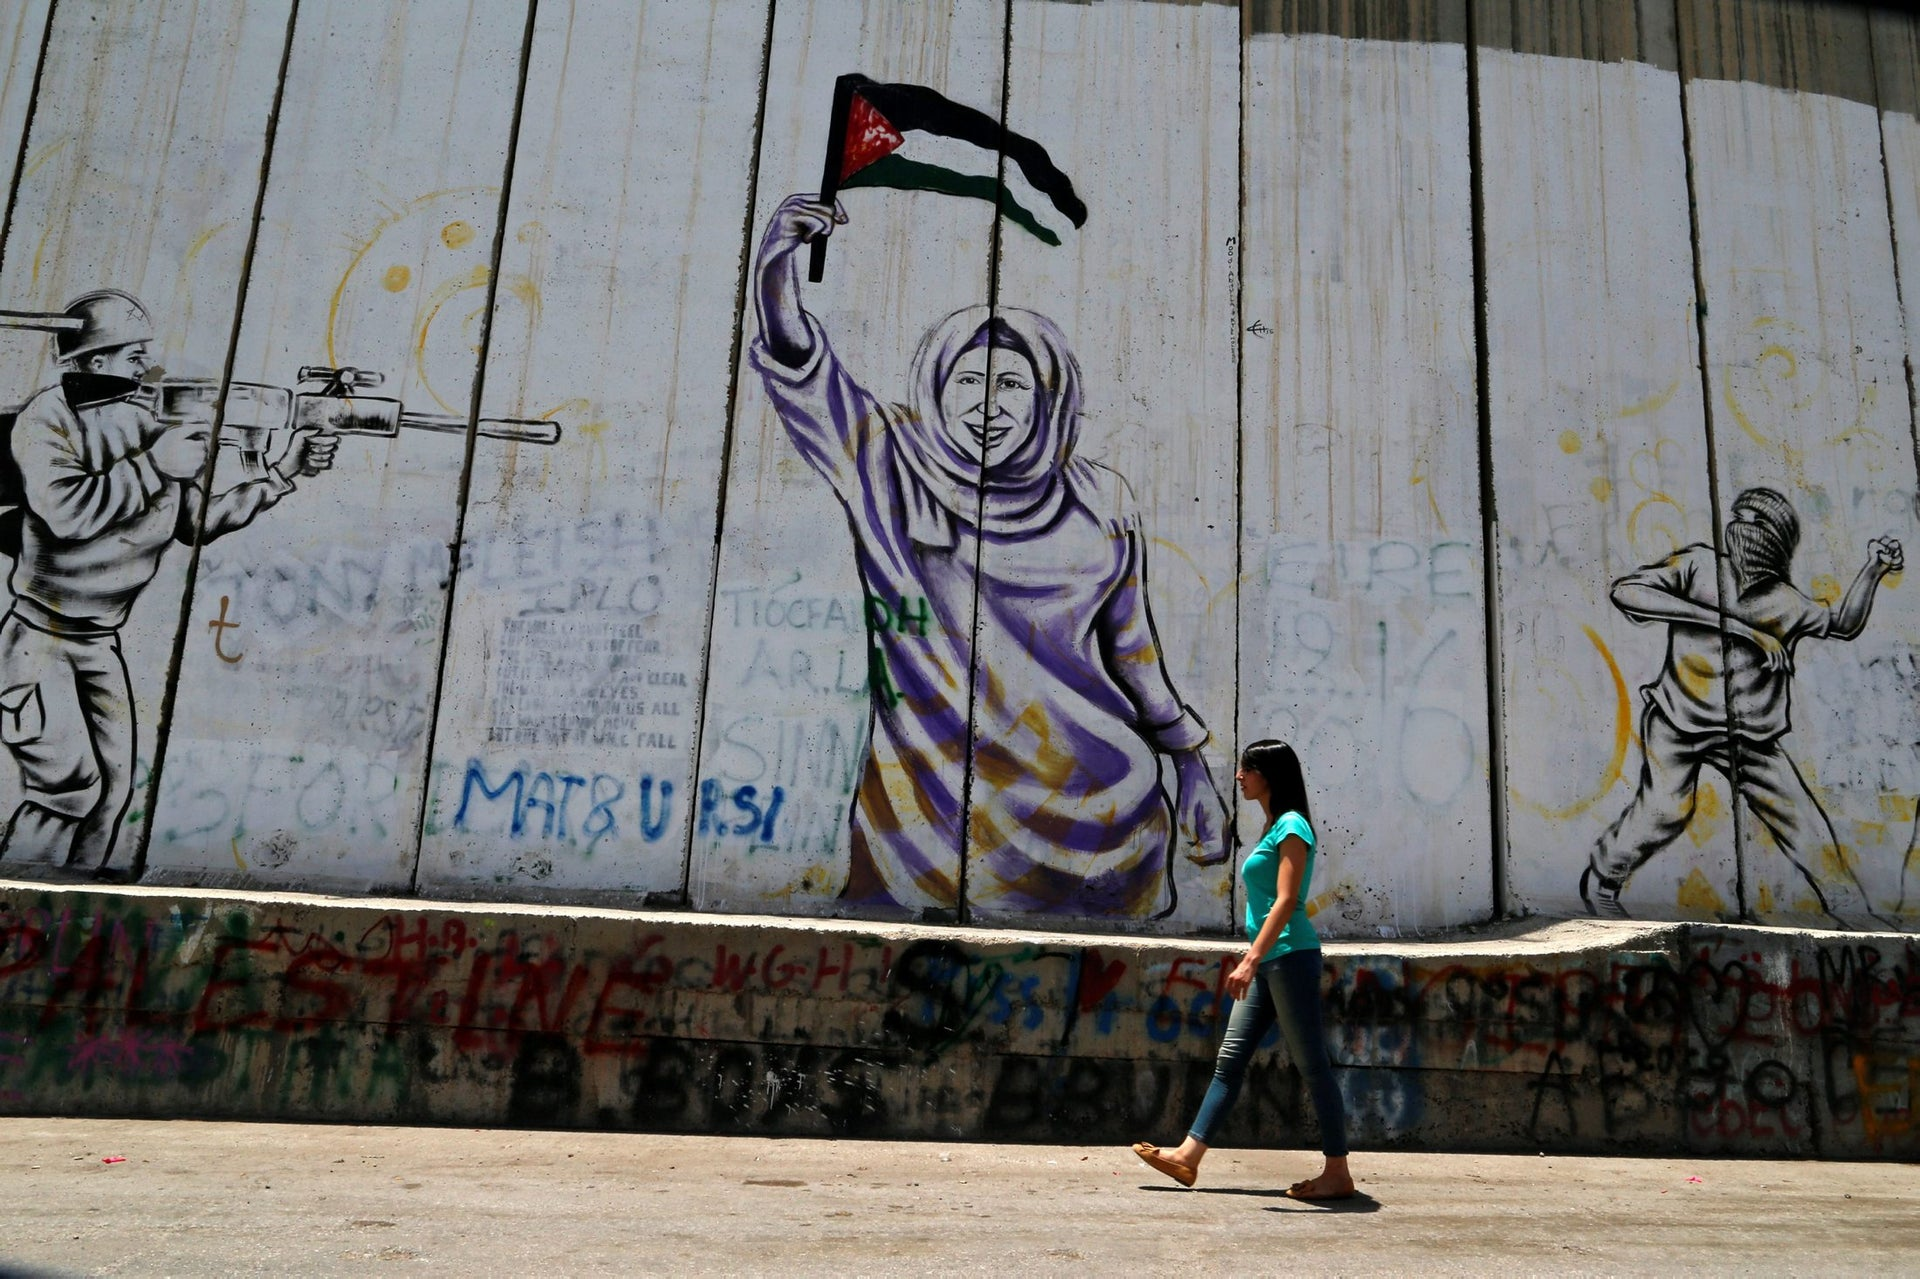 Palestinian swimmer Mary Al-Atrash, 22, who will represent Palestine at the 2016 Rio Olympics, walks past the Israeli barrier in the West Bank town of Bethlehem June 27, 2016.